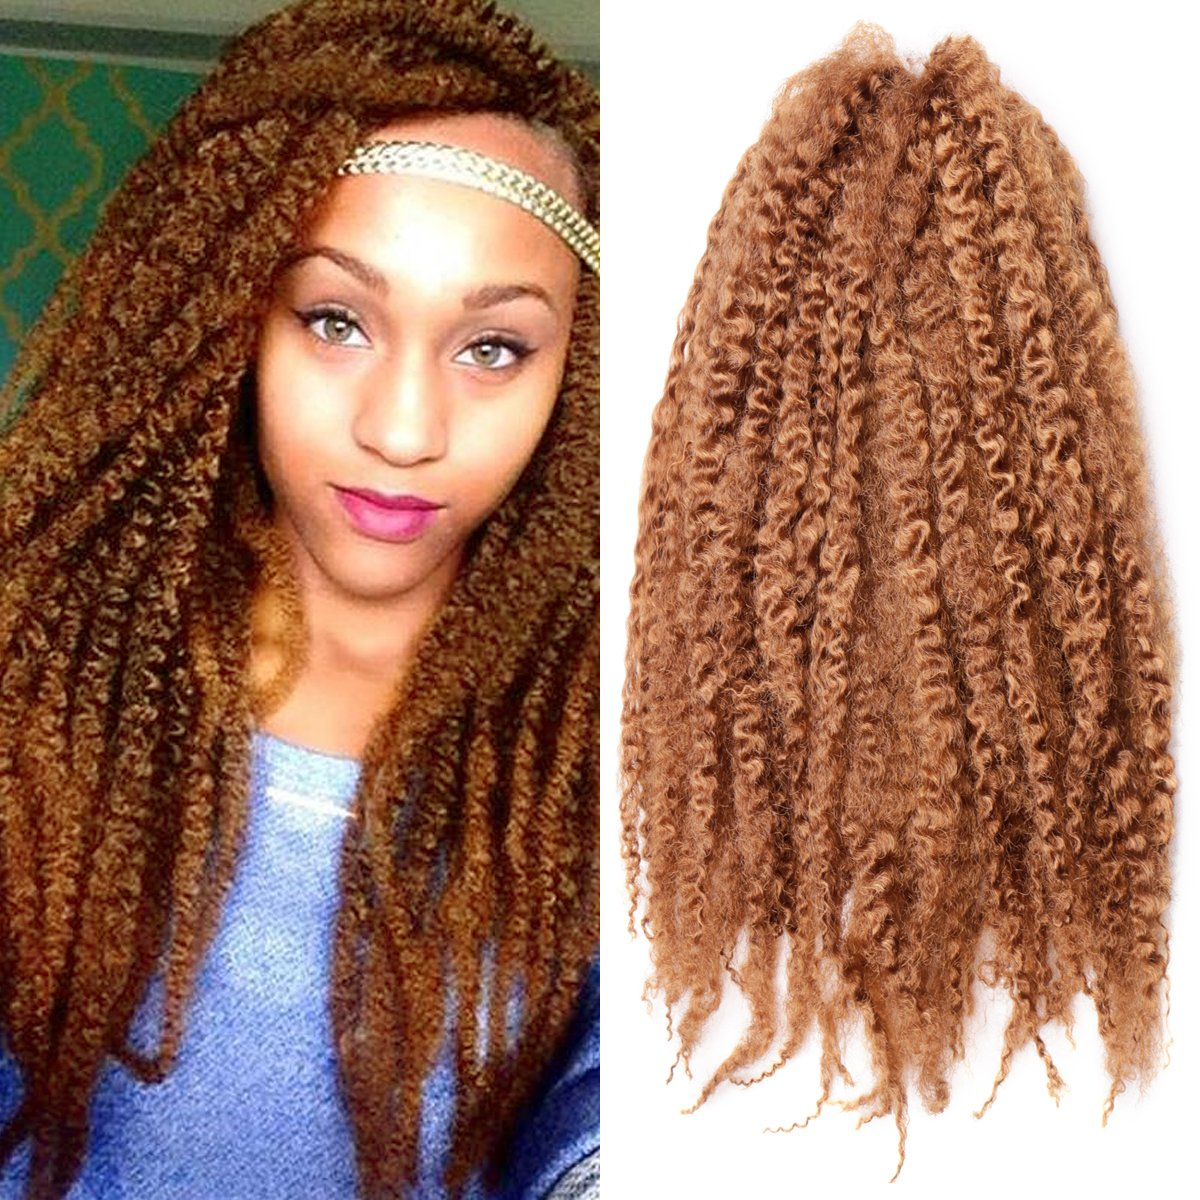 Amazon Pack Of 3 Afro Kinky Marley 18 Inch Braids Hair